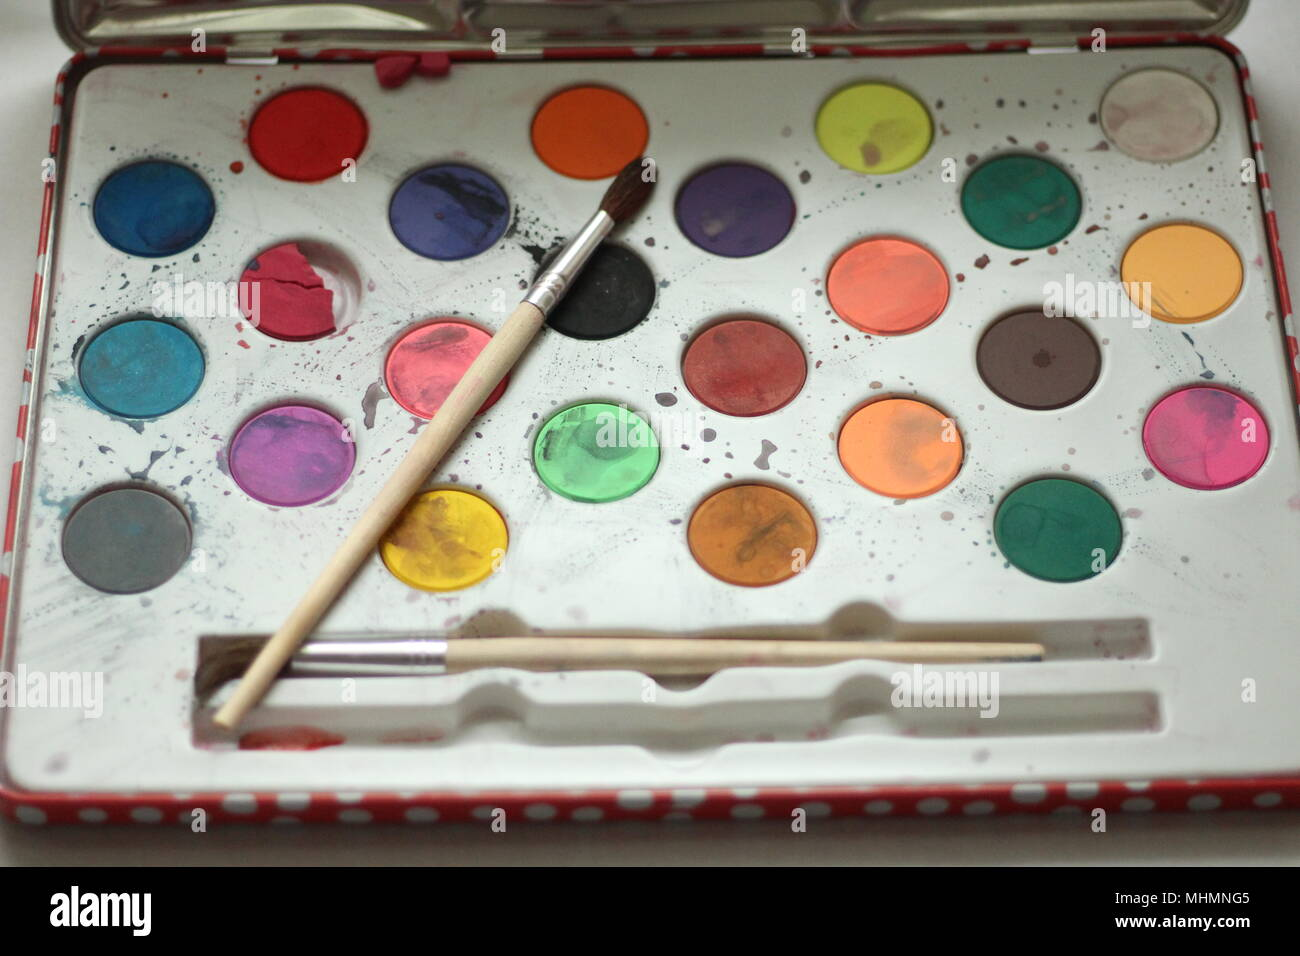 Children's watercolour paintbox and brush - Stock Image